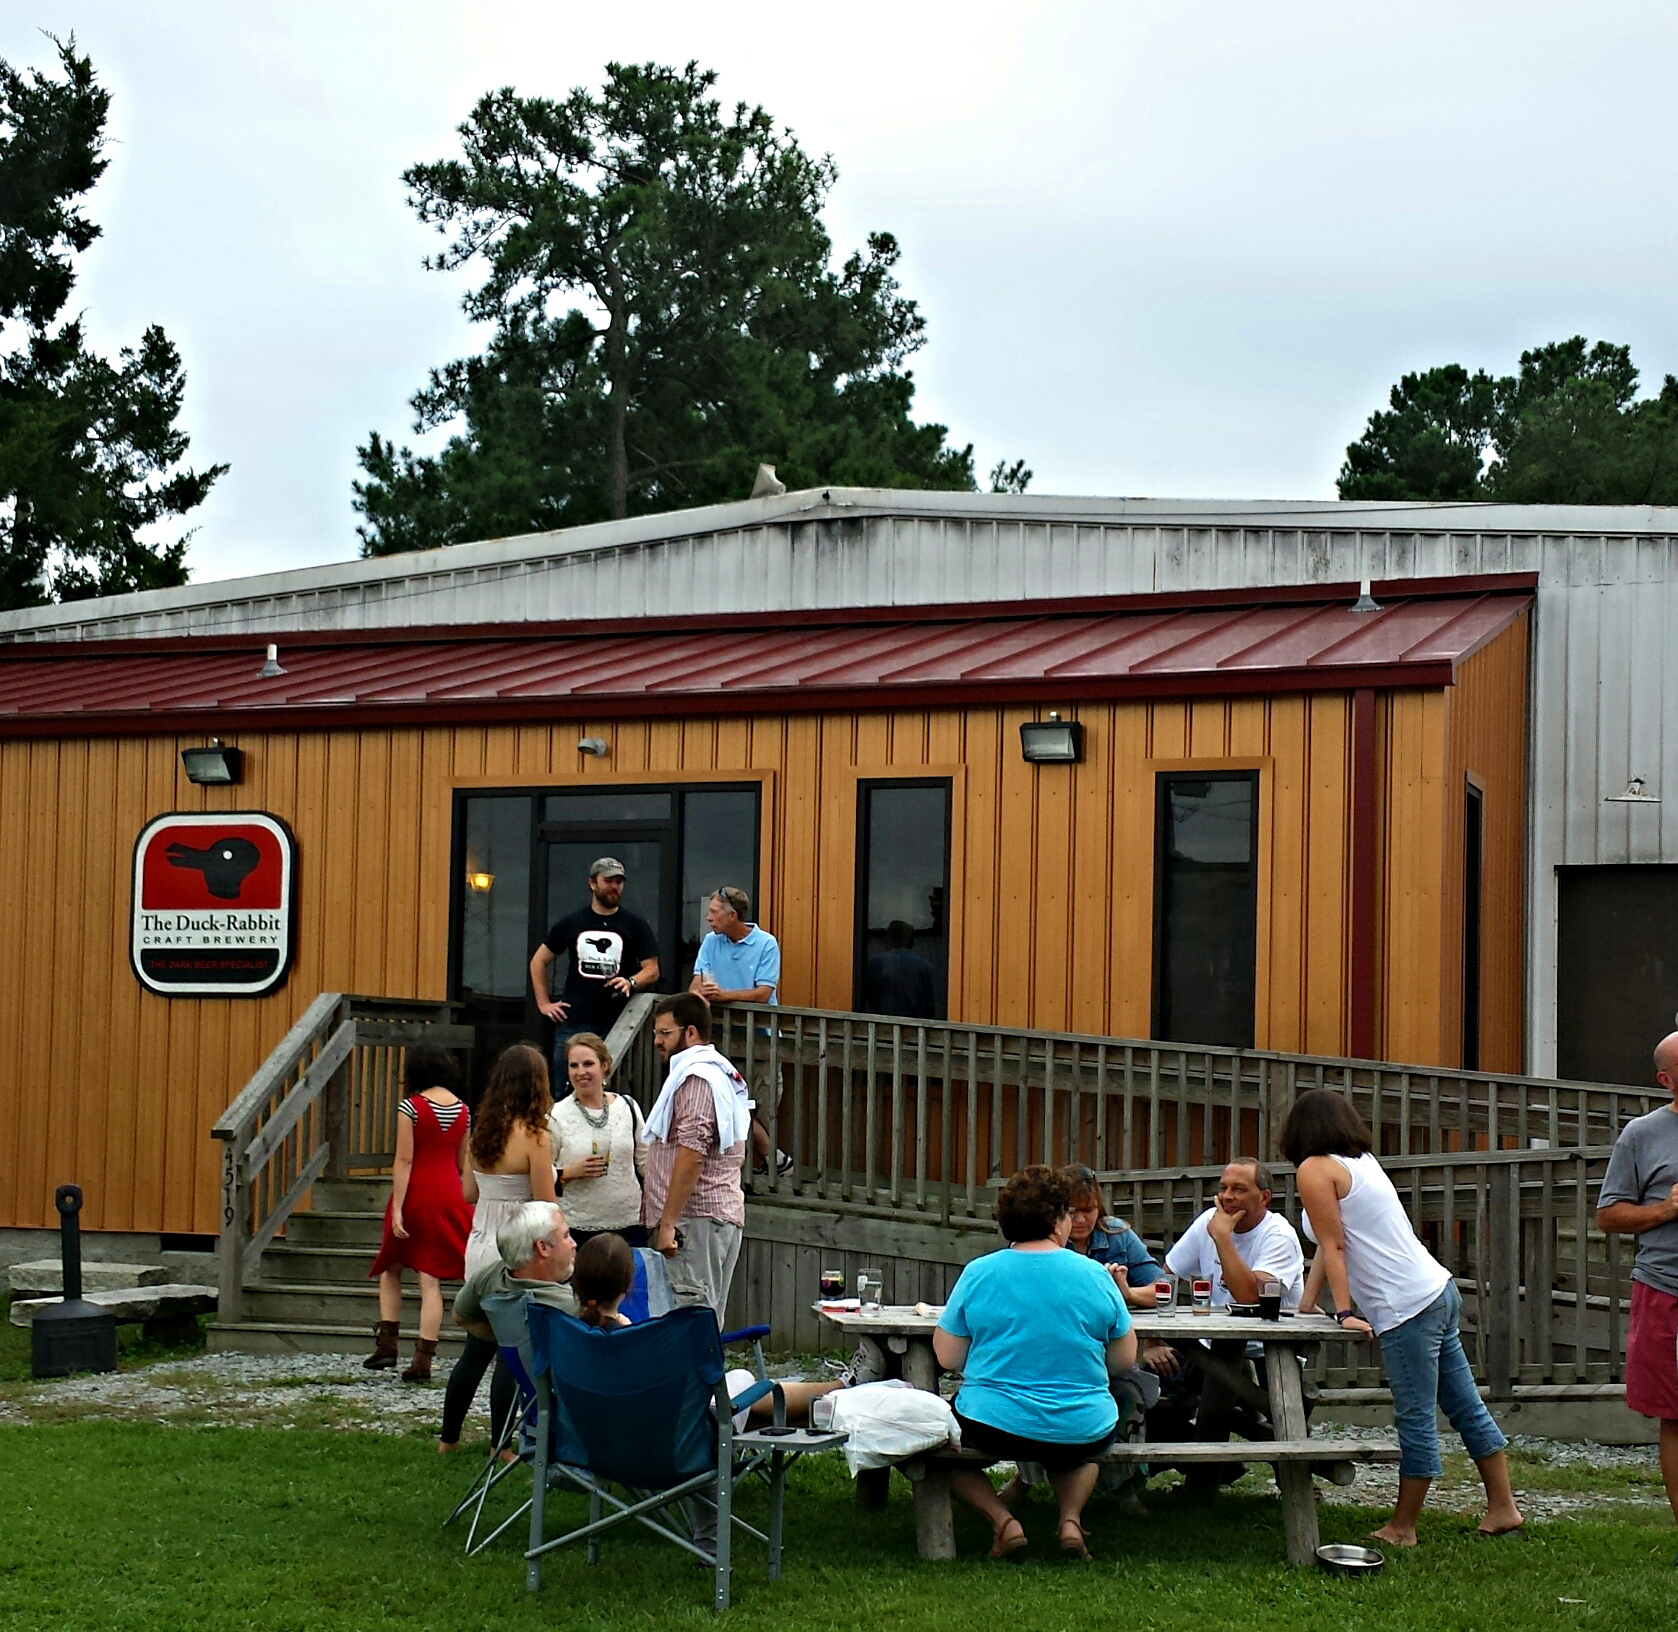 The Duck-Rabbit Craft Brewery (Farmville, North Carolina)